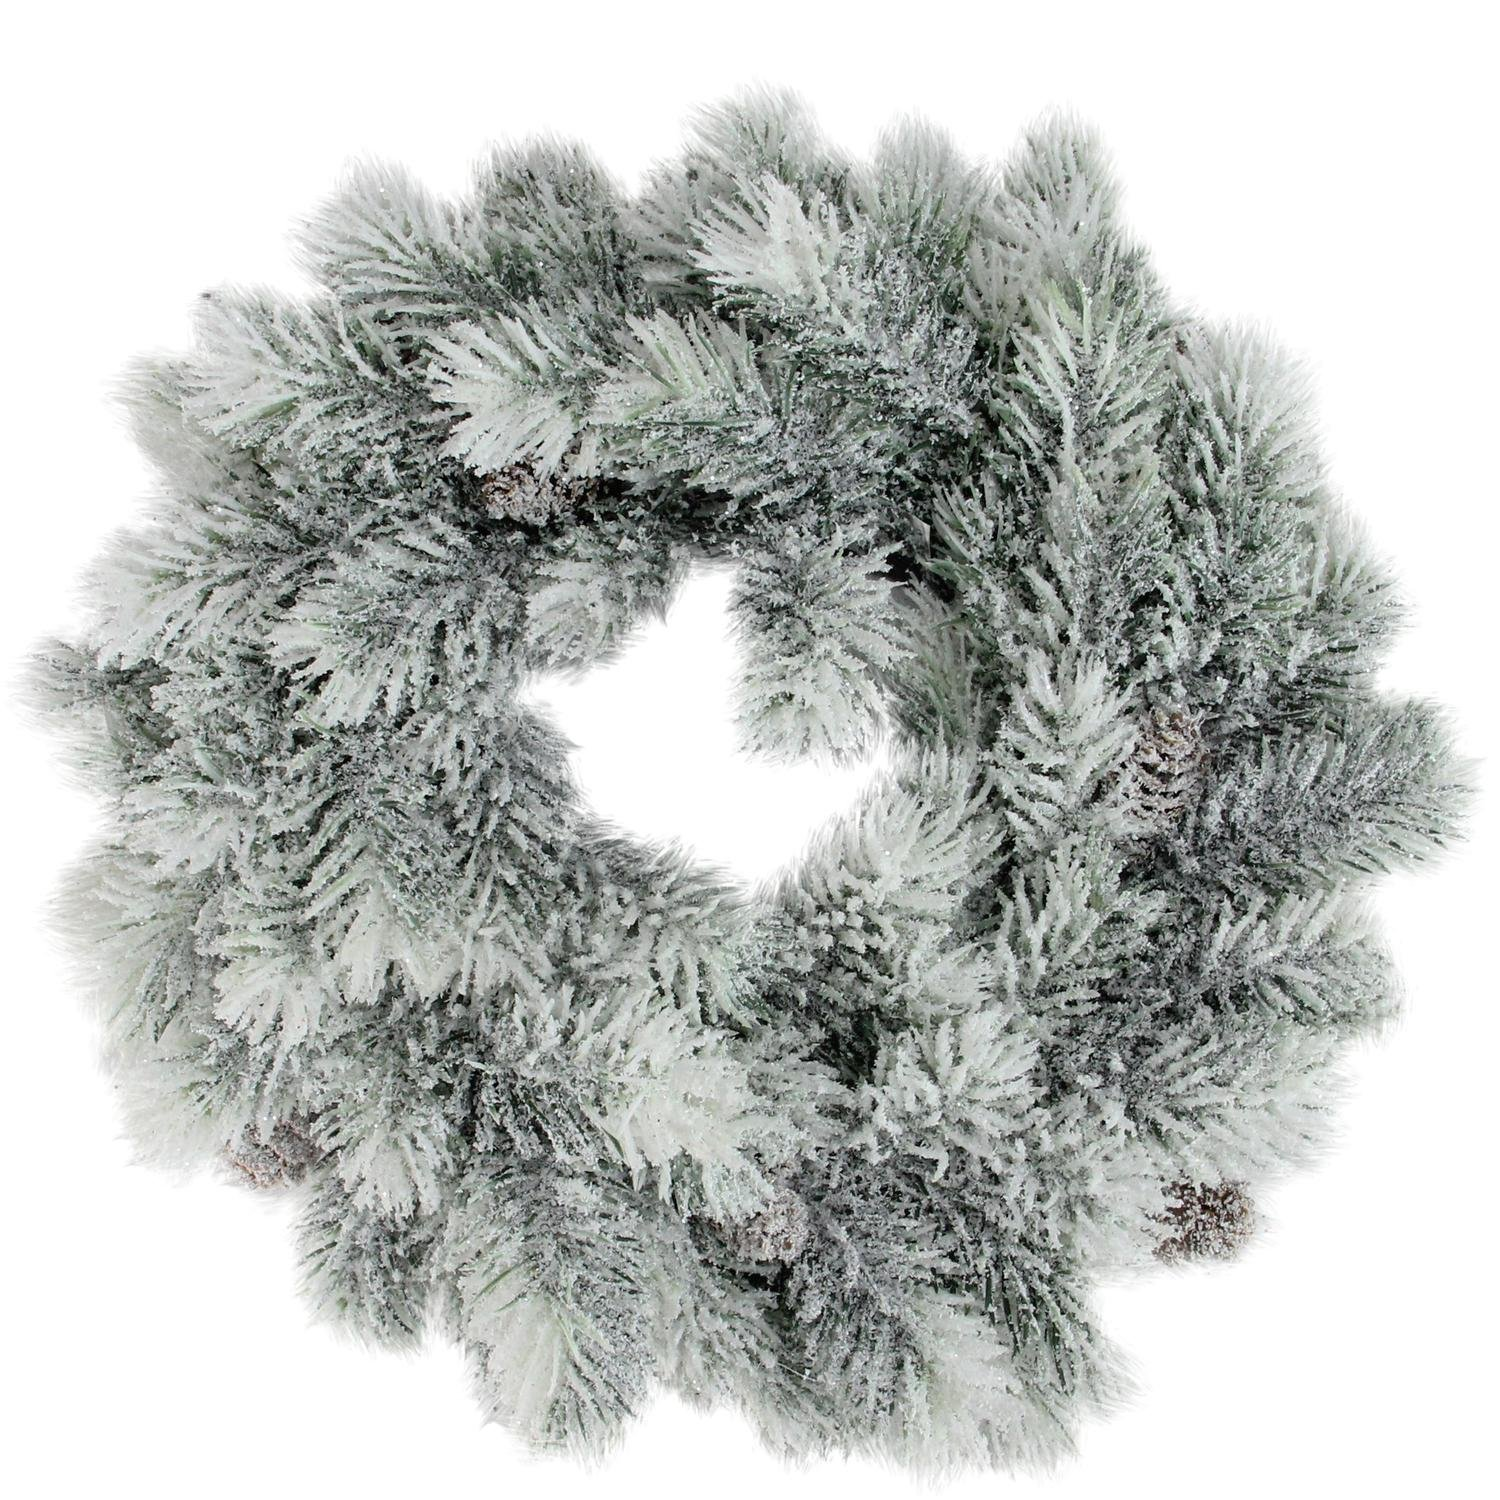 Northlight NL00974 Christmas Wreath with Pine Cones, 12 12